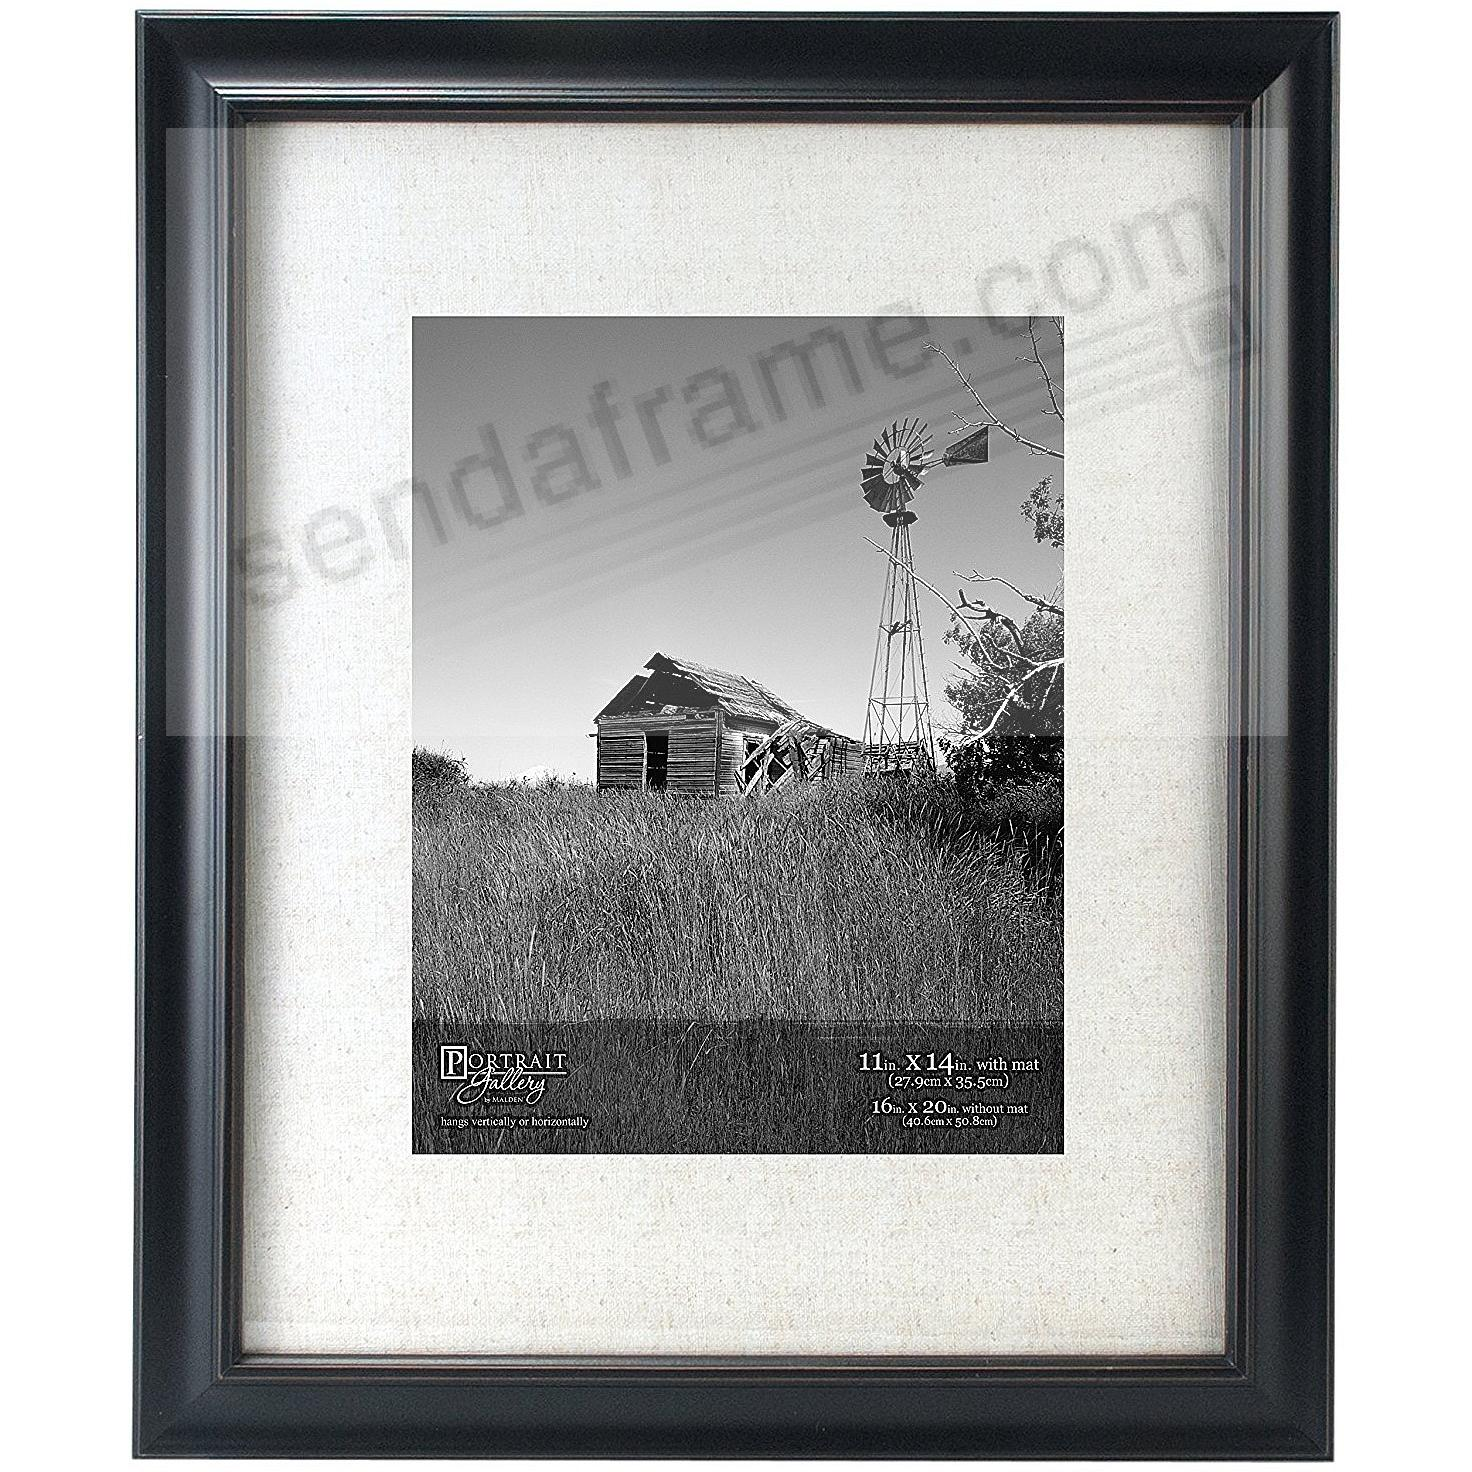 BARNSIDE Black for 16x20/11x14 prints by Malden®